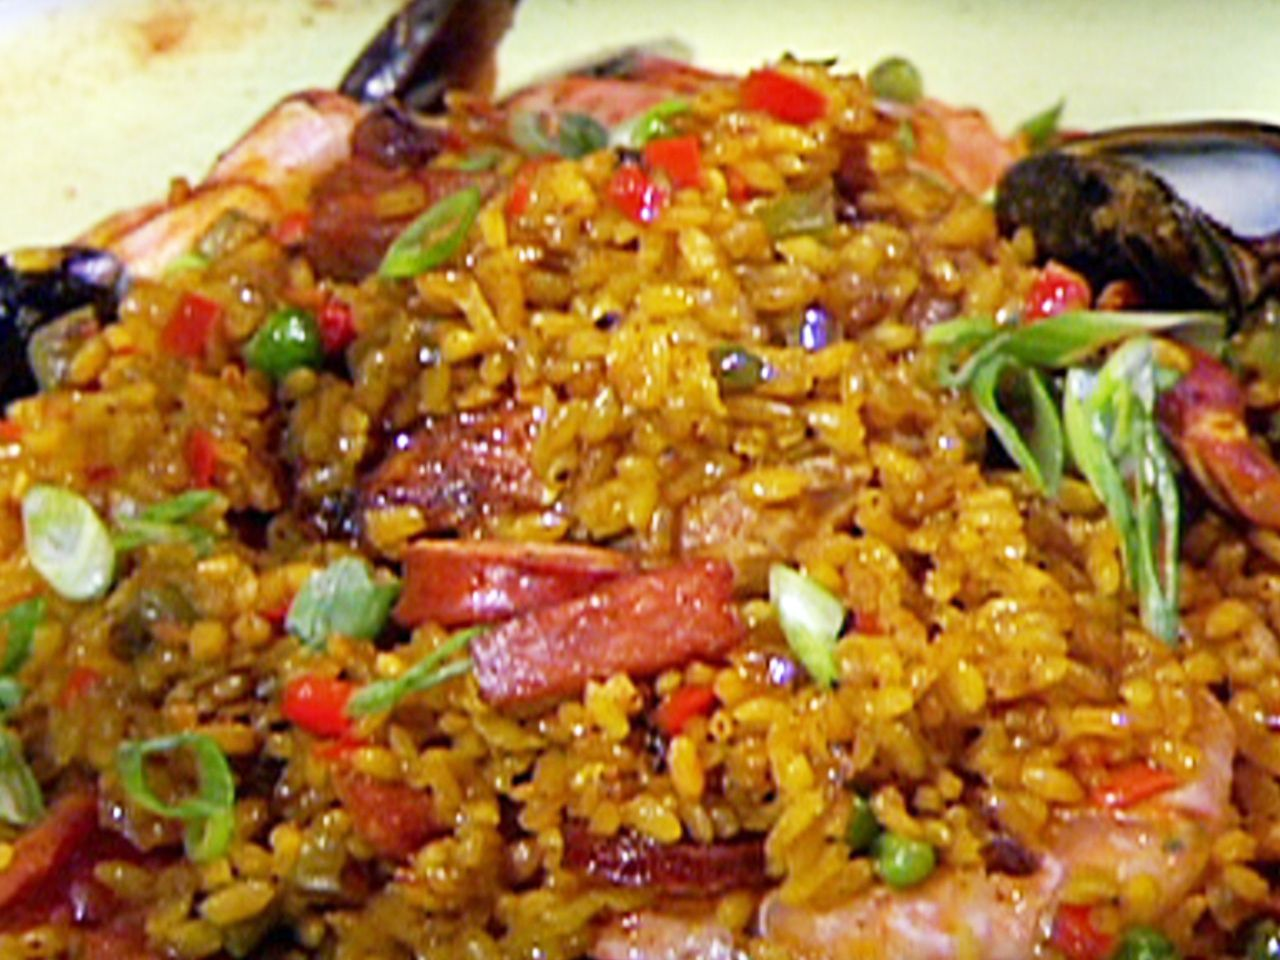 Plantain stuffing recipe paella grilling and recipes grilled paella mixta recipe from emeril lagasse via food network forumfinder Images